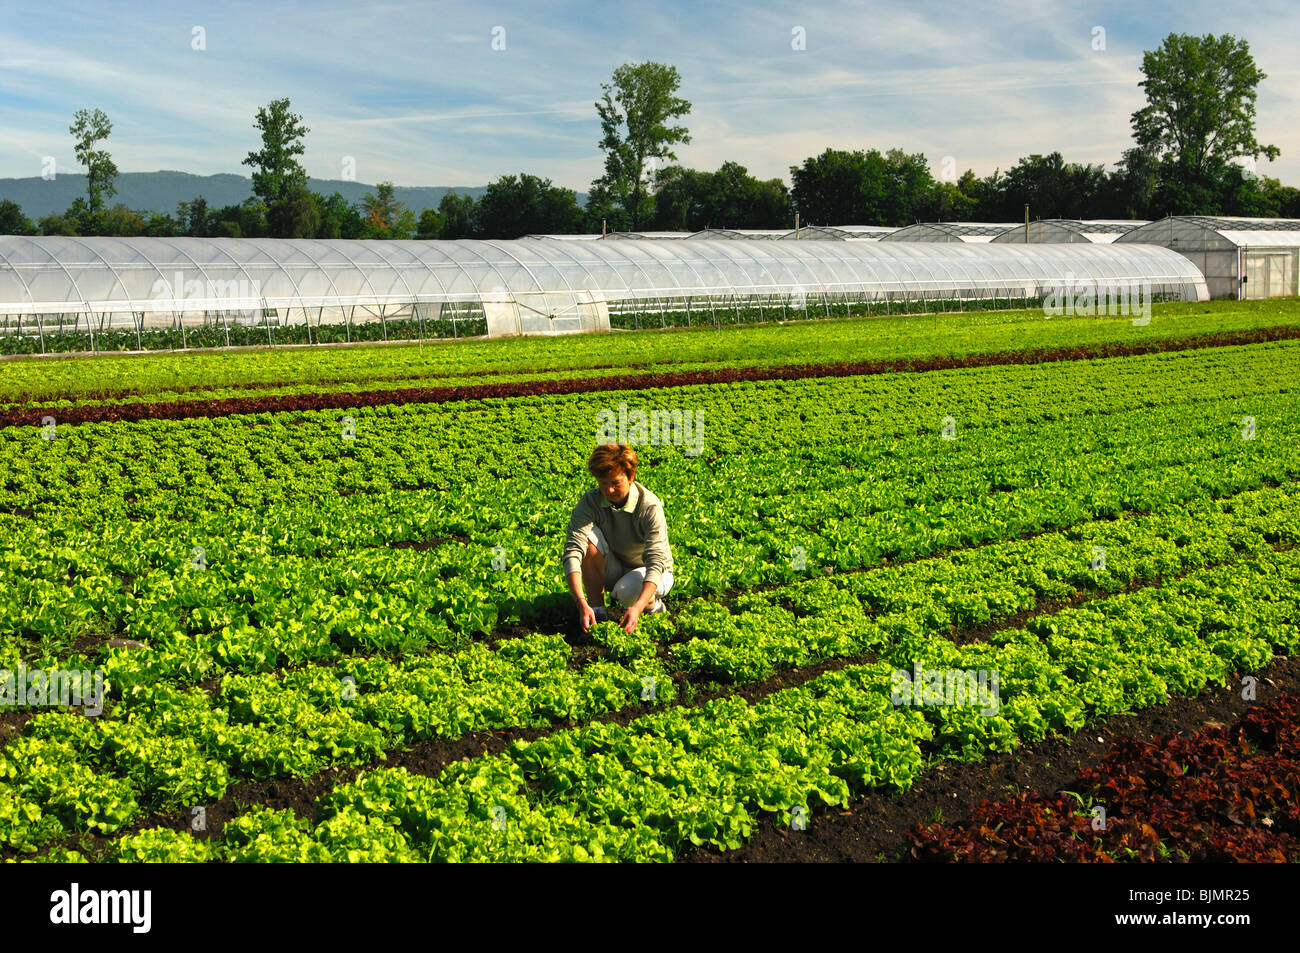 Control work in a lettuce field in the vegetable growing area Grosses Moos, Seeland region, Switzerland, Europe - Stock Image